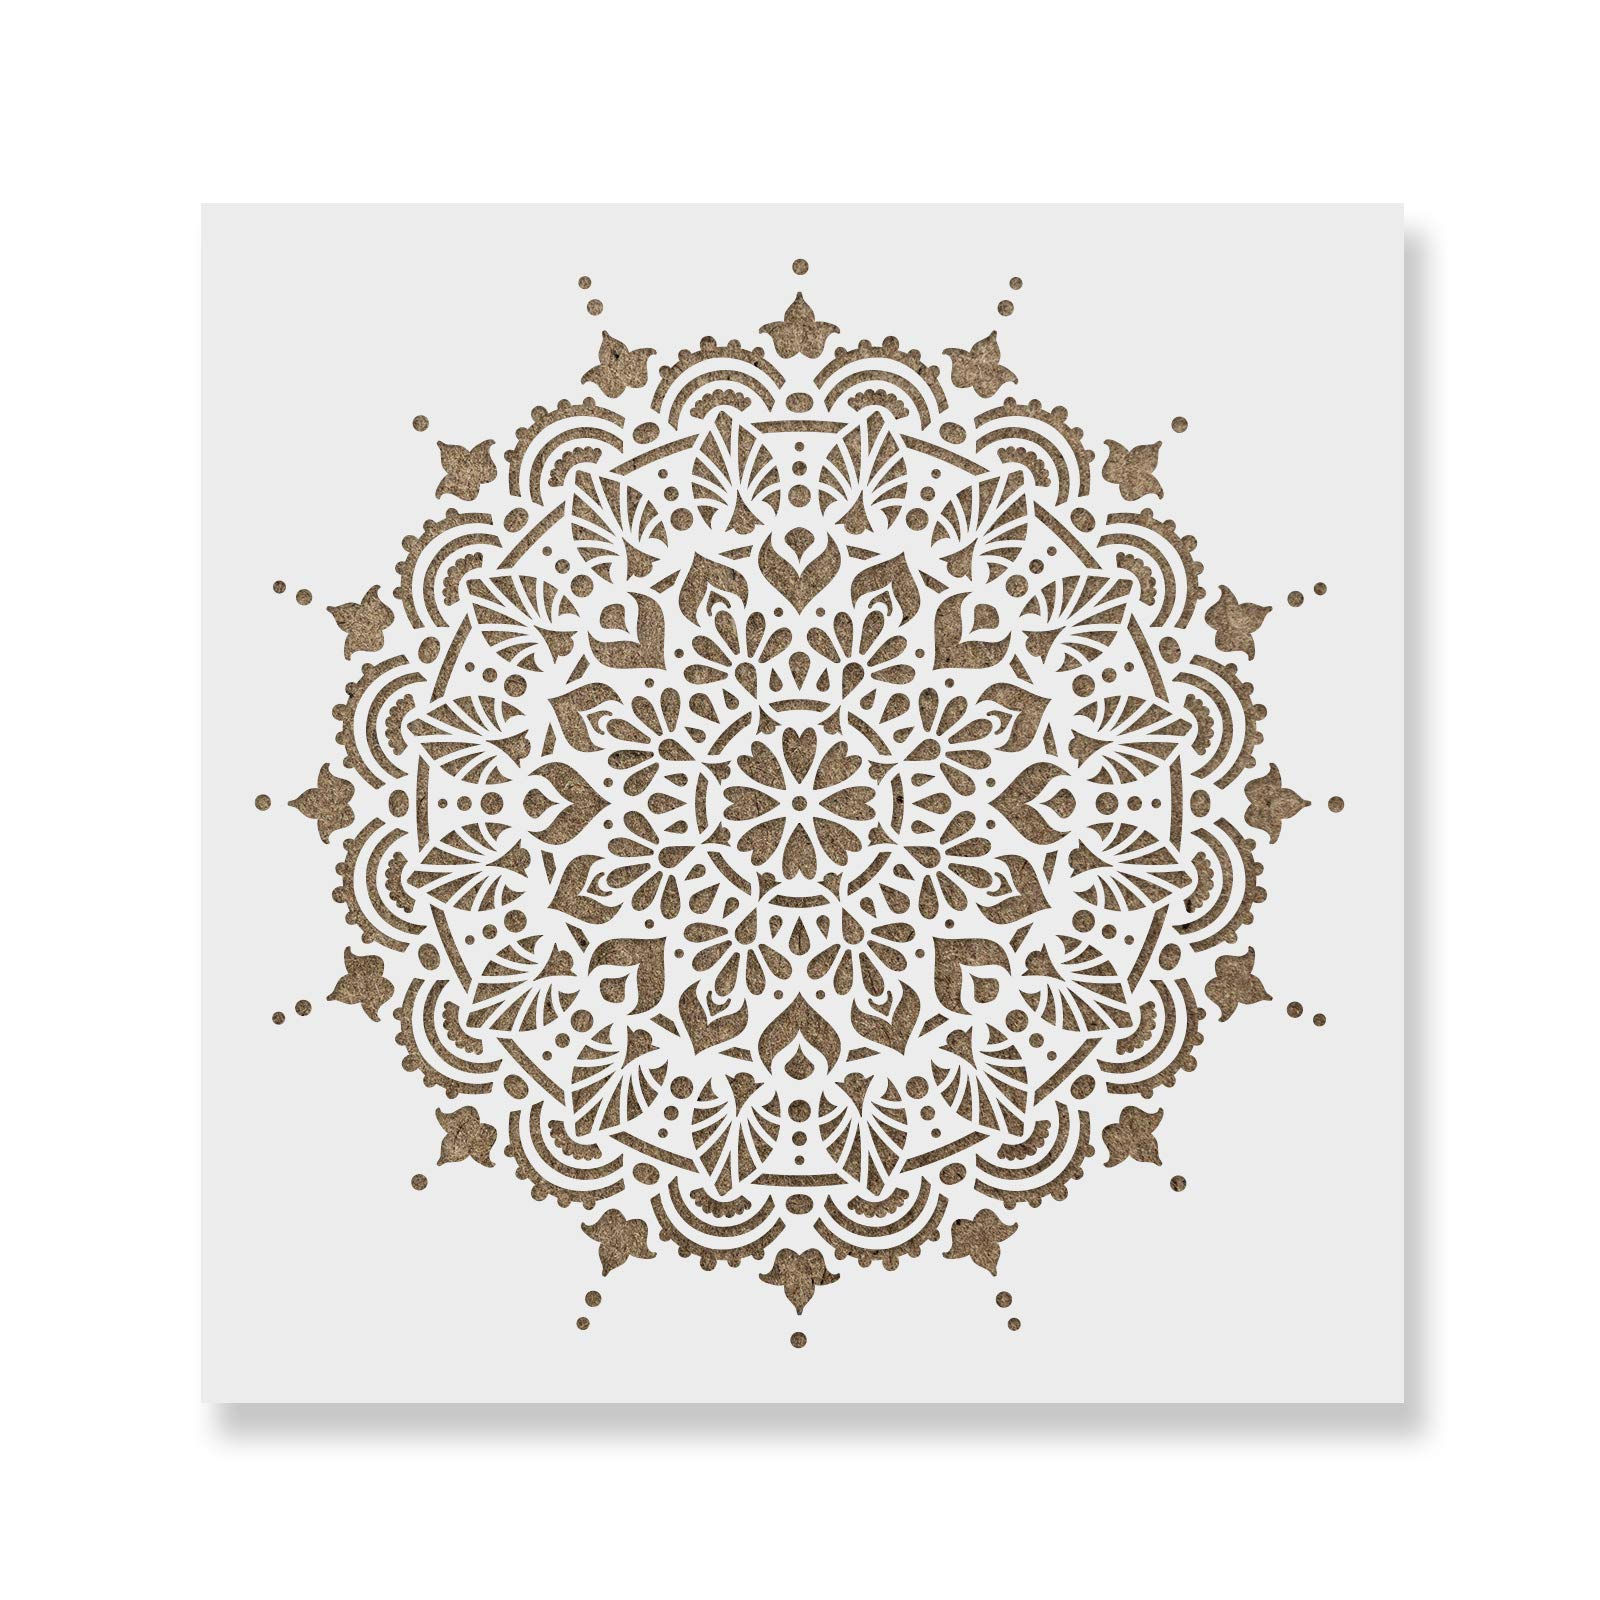 Paradise Mandala Stencil Template Walls Crafts - Reusable Stencils Painting in Small & Large Sizes